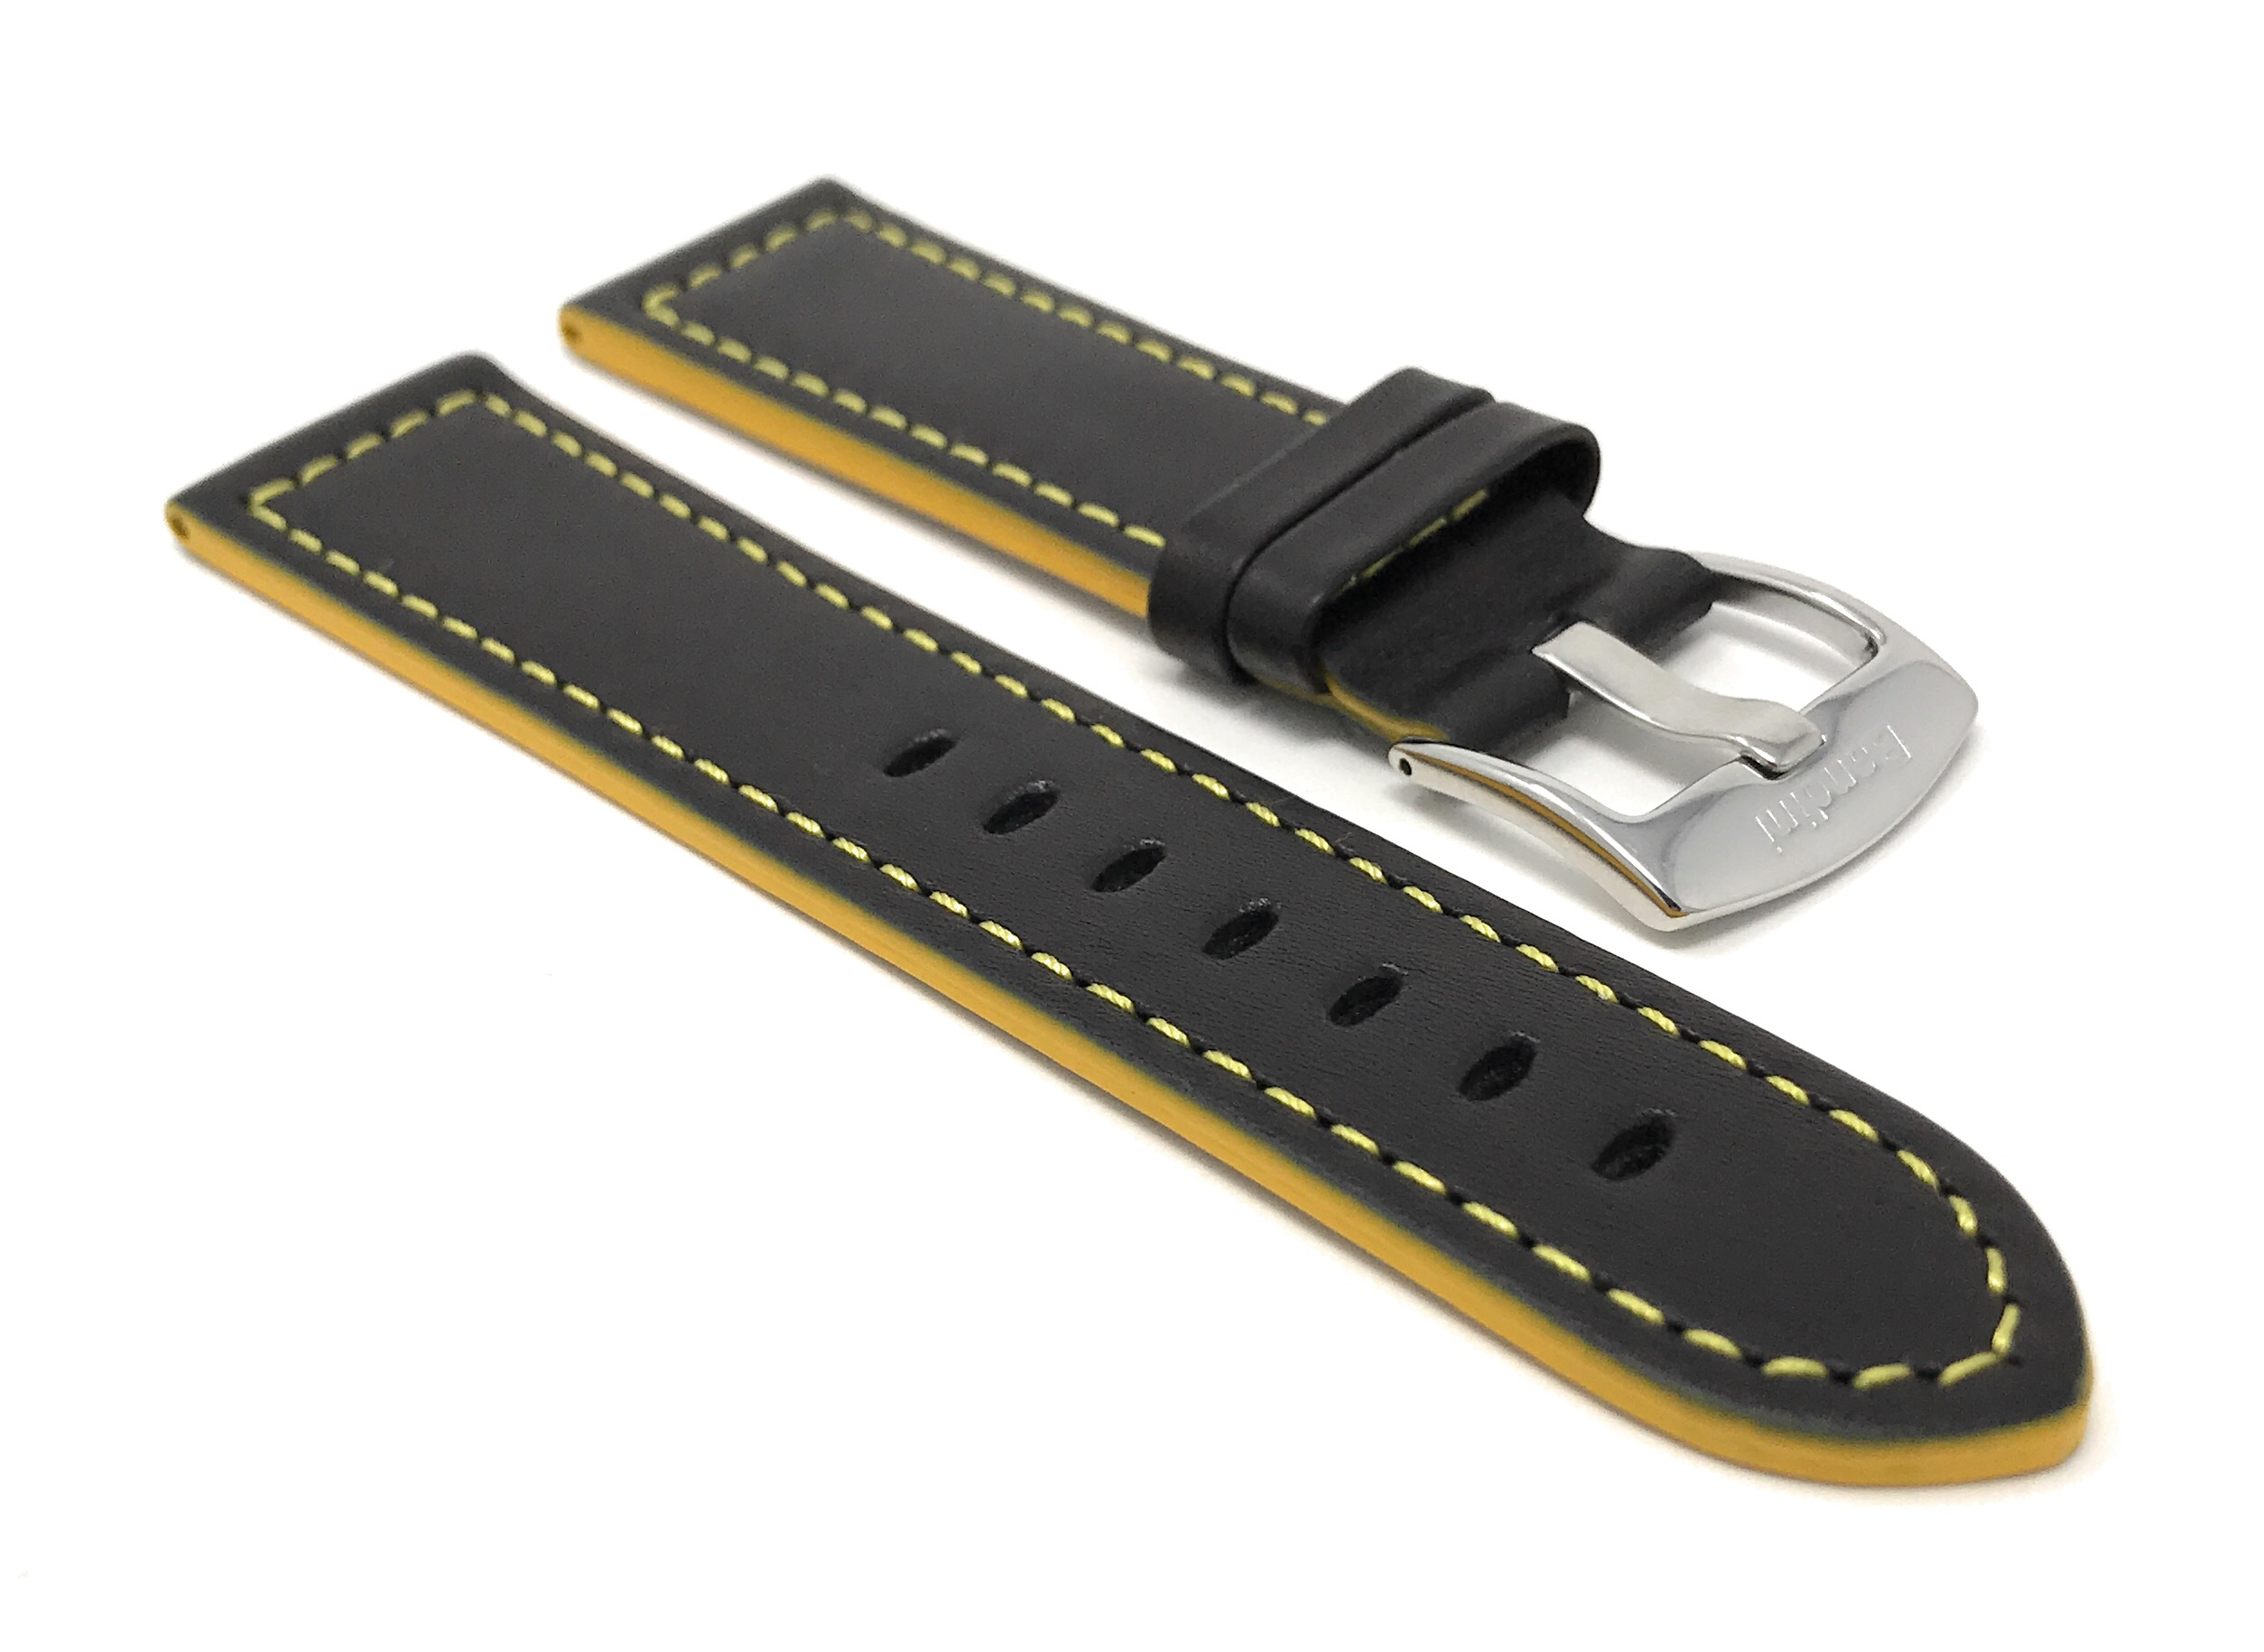 Bandini-Leather-Watch-Band-Racer-Strap-5-Colors-18-20-22-24mm-Extra-Long-Too thumbnail 15